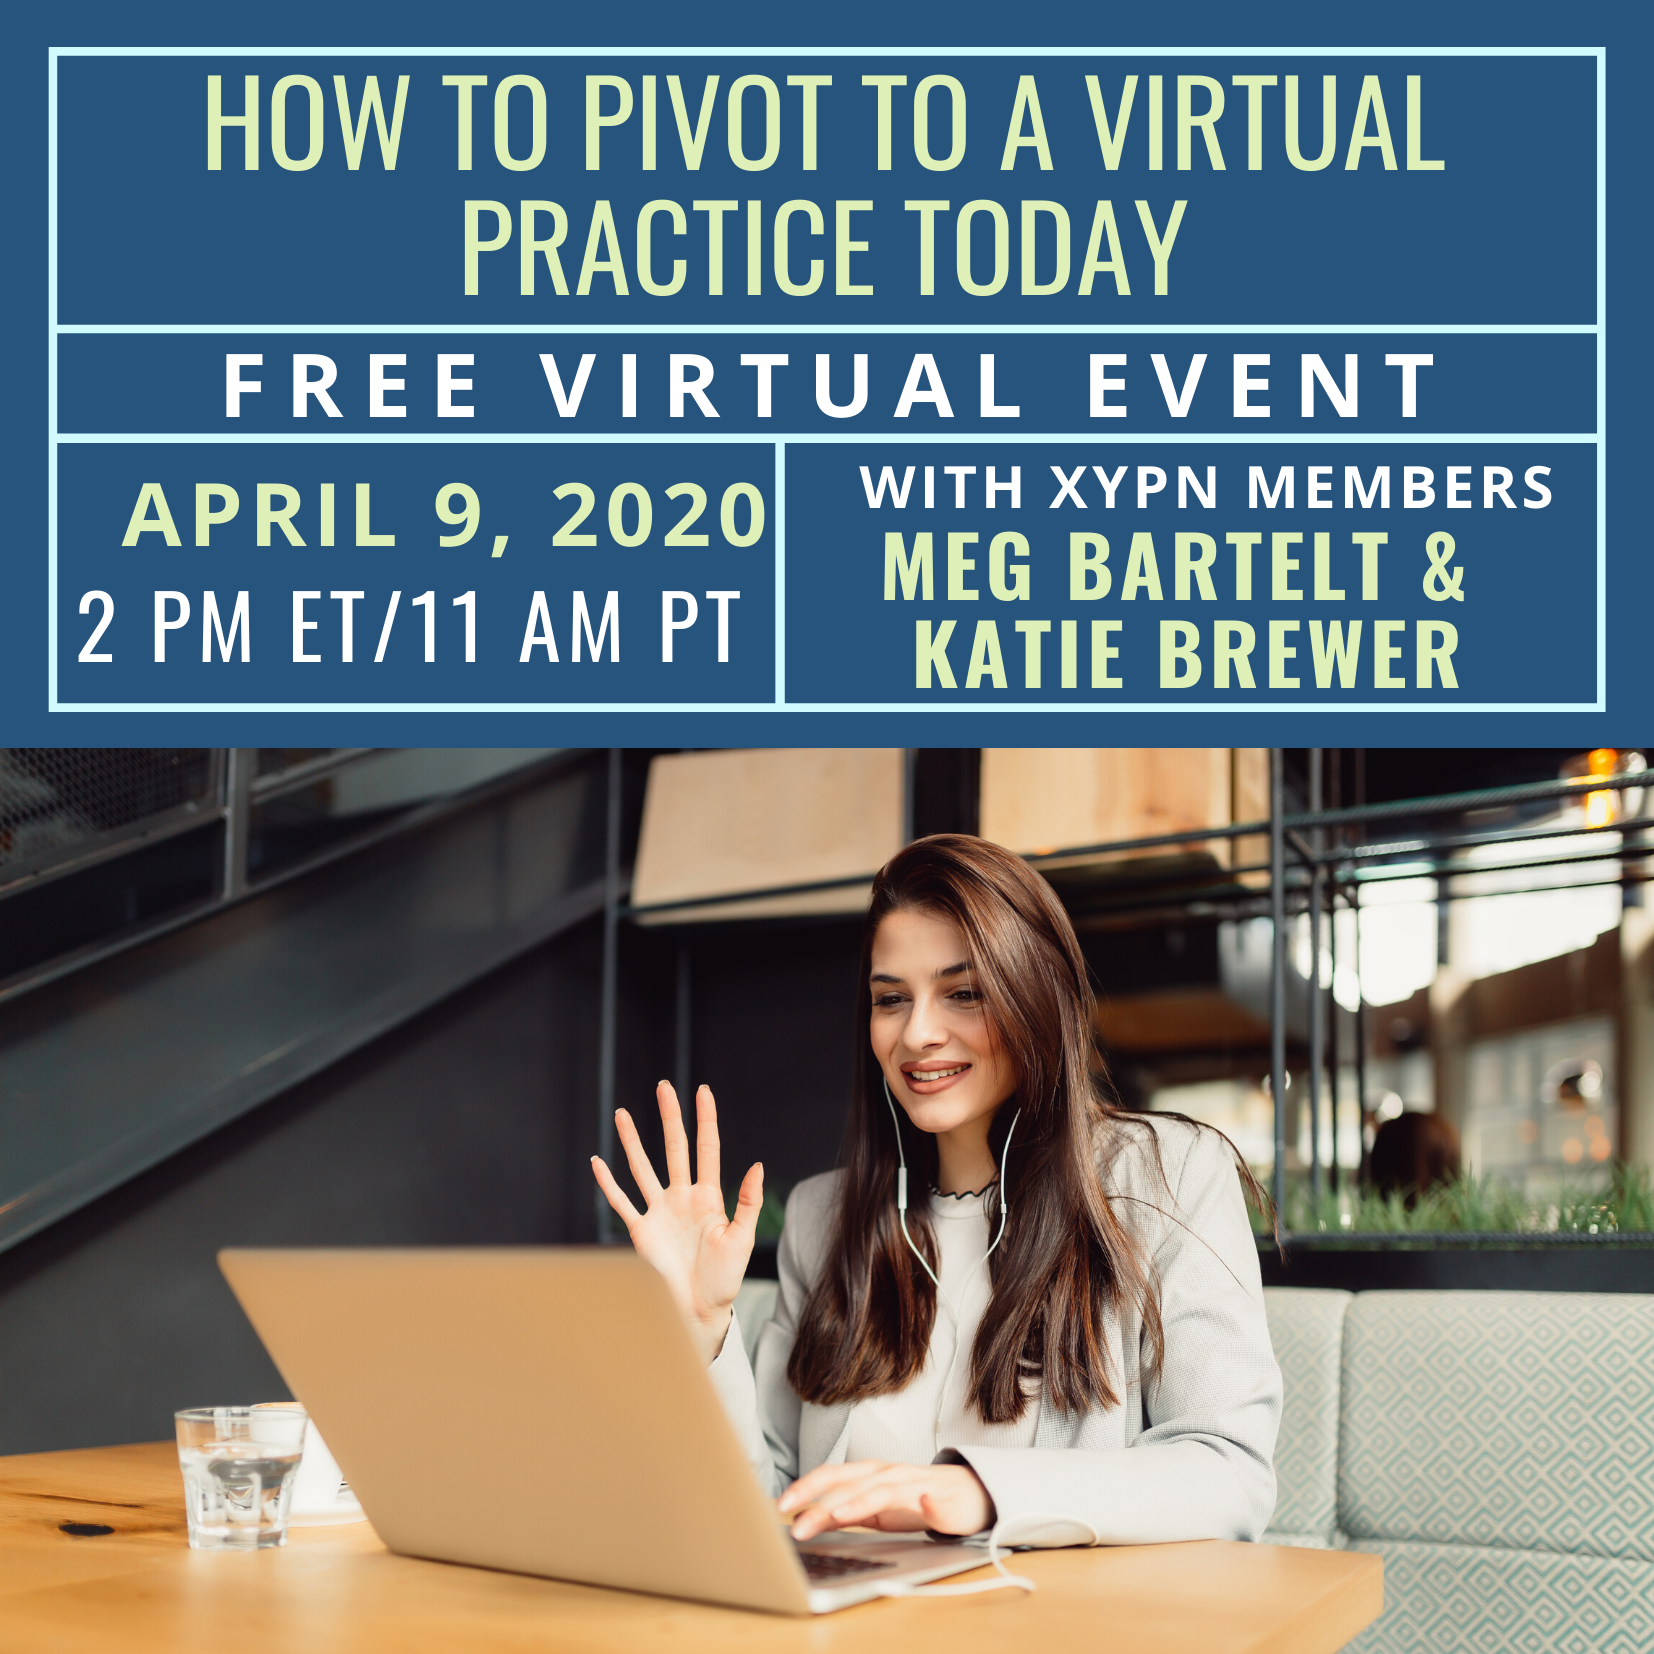 Free Virtual Event: How to Pivot to a Virtual Practice Today